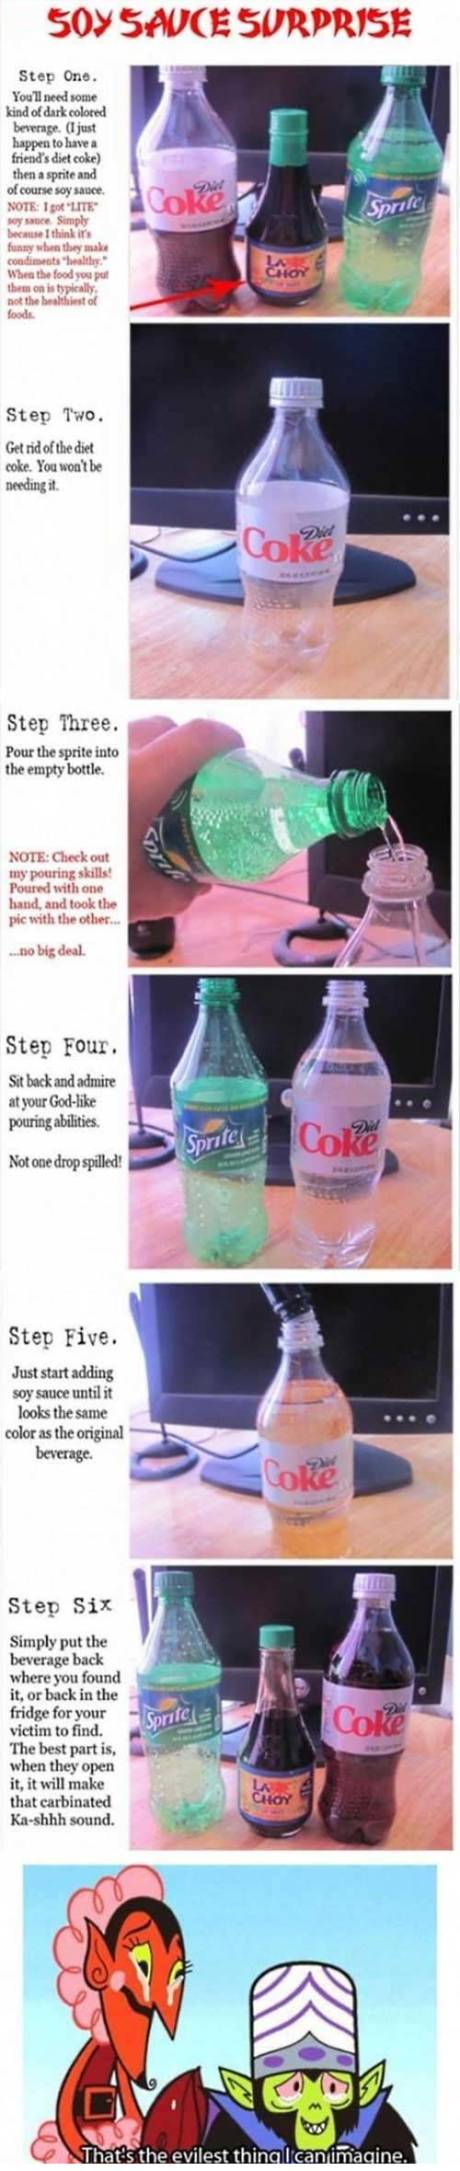 """April Fool's Prank: """"Soy Sauce Suprise""""  Combine Sprite and Soy Sauce in a Diet Coke bottle"""